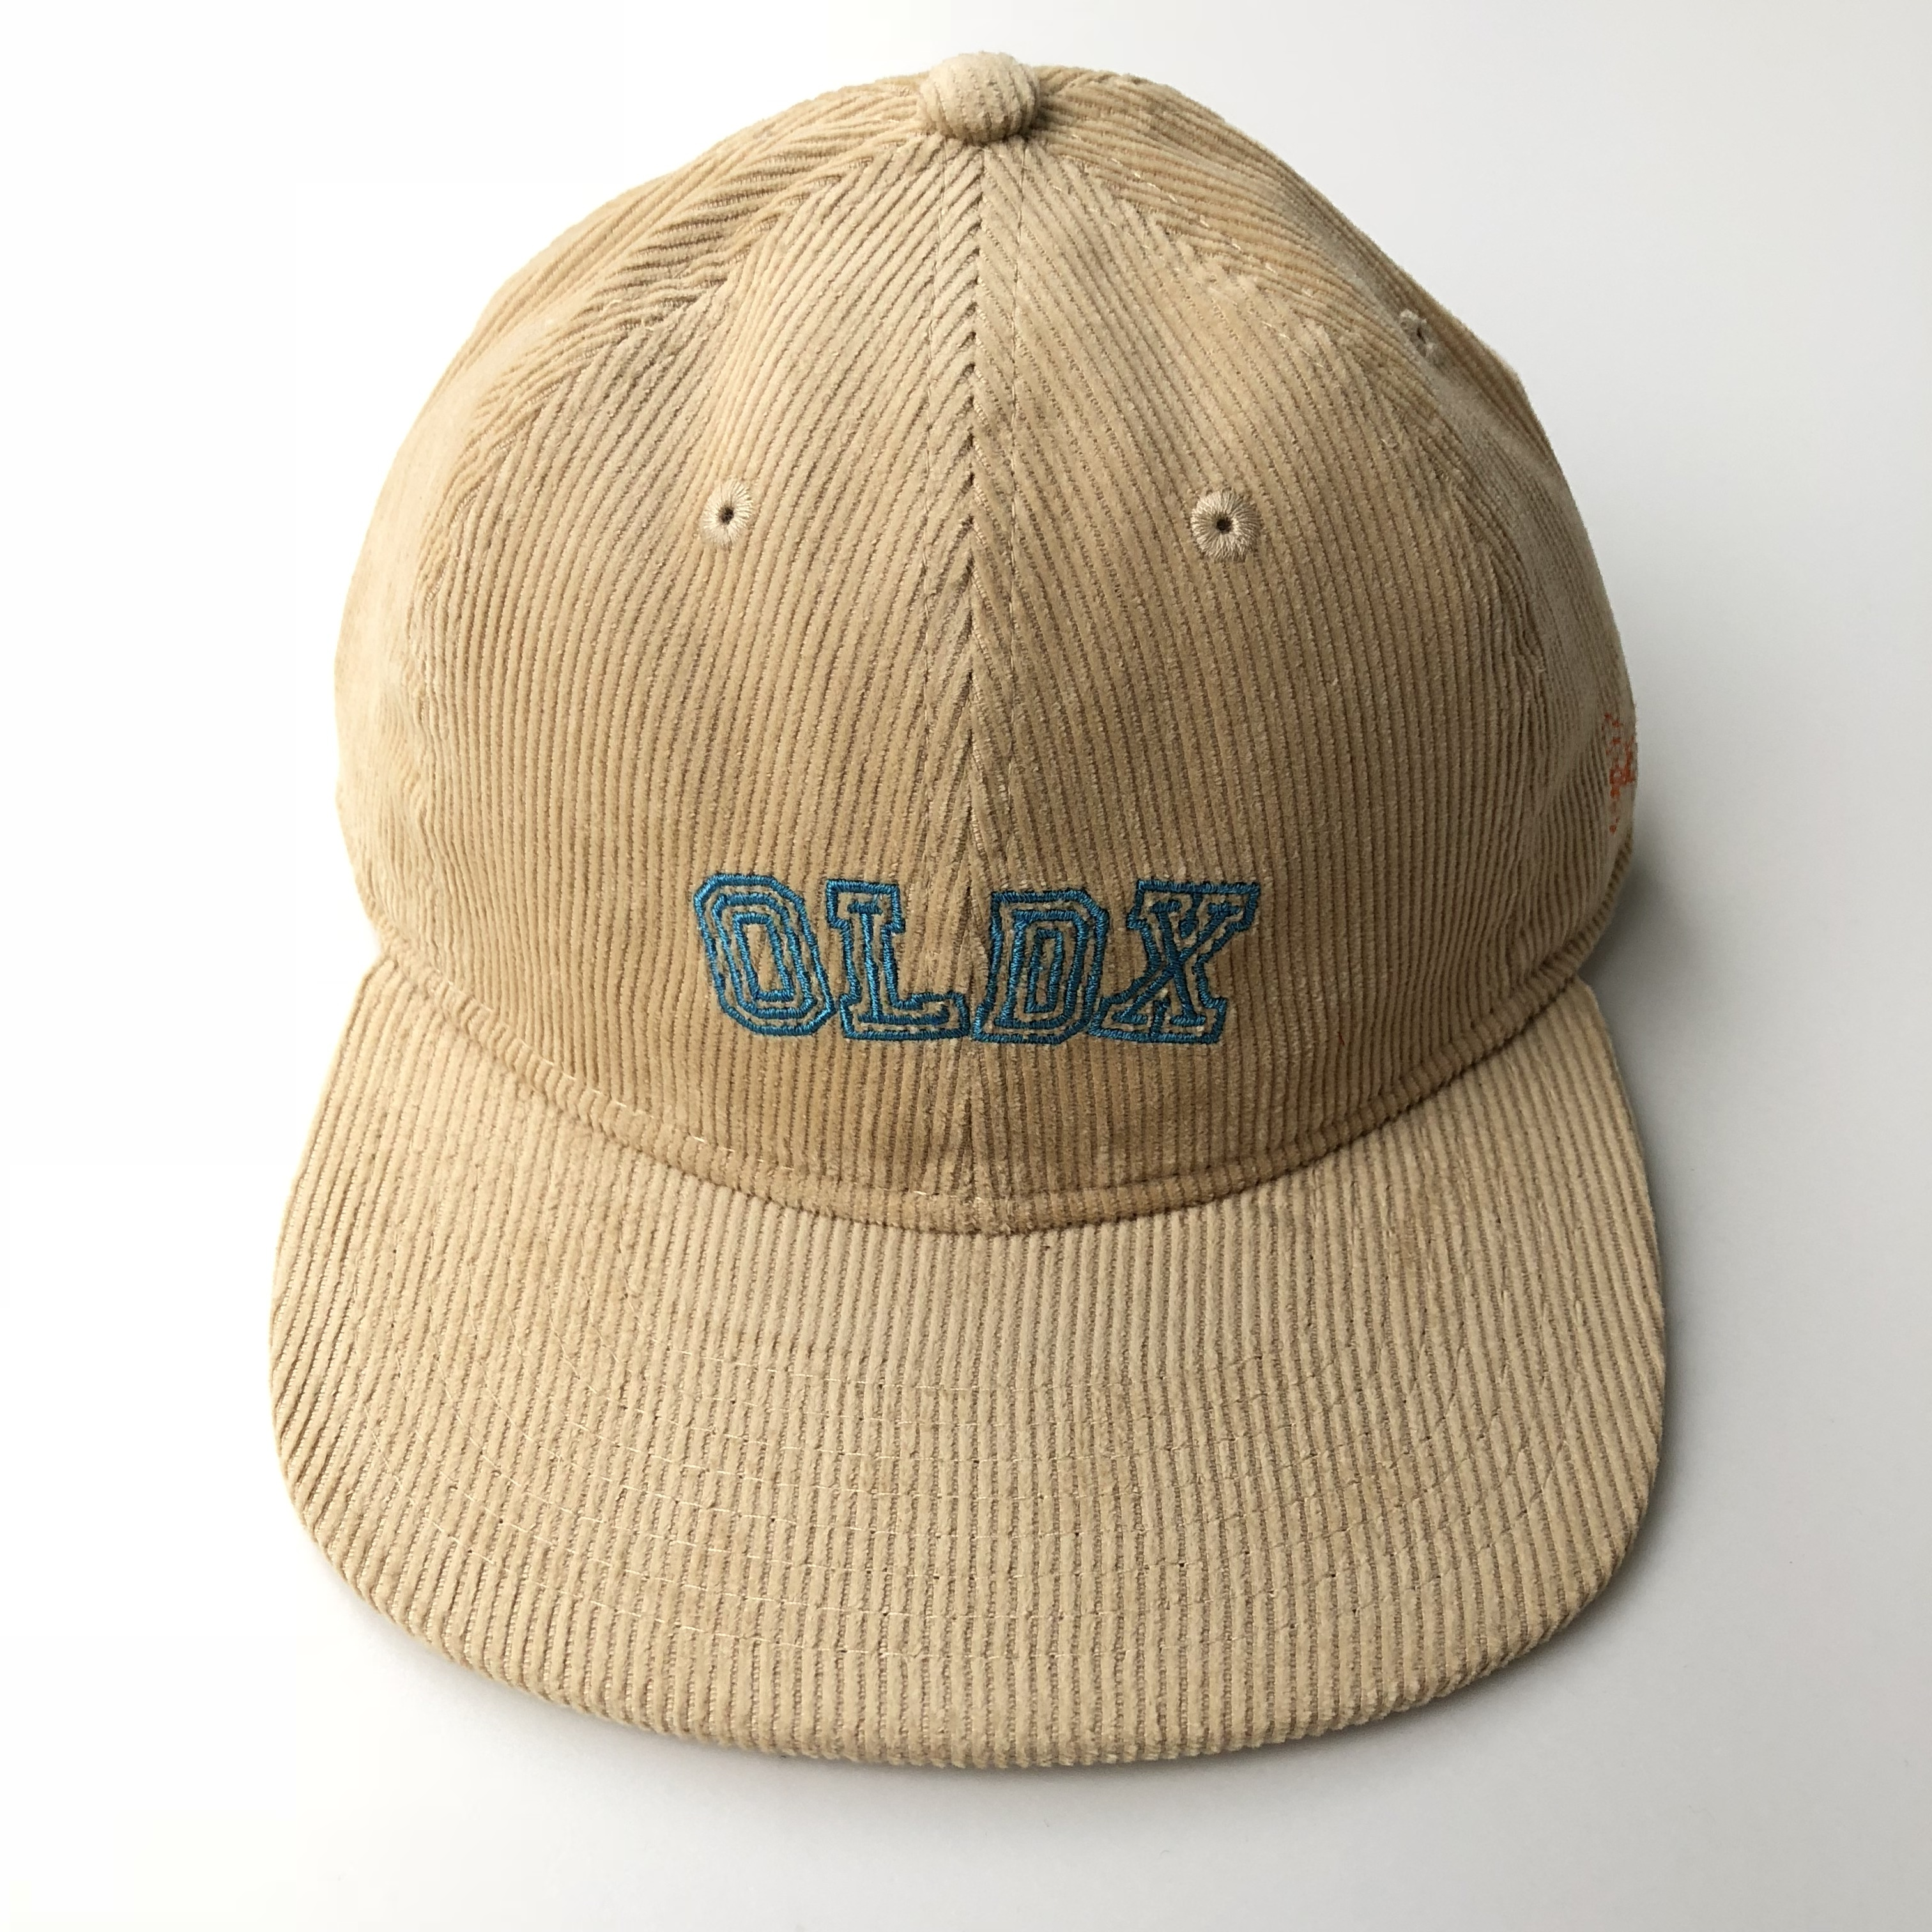 Life goes on corduroy cap BEIGE